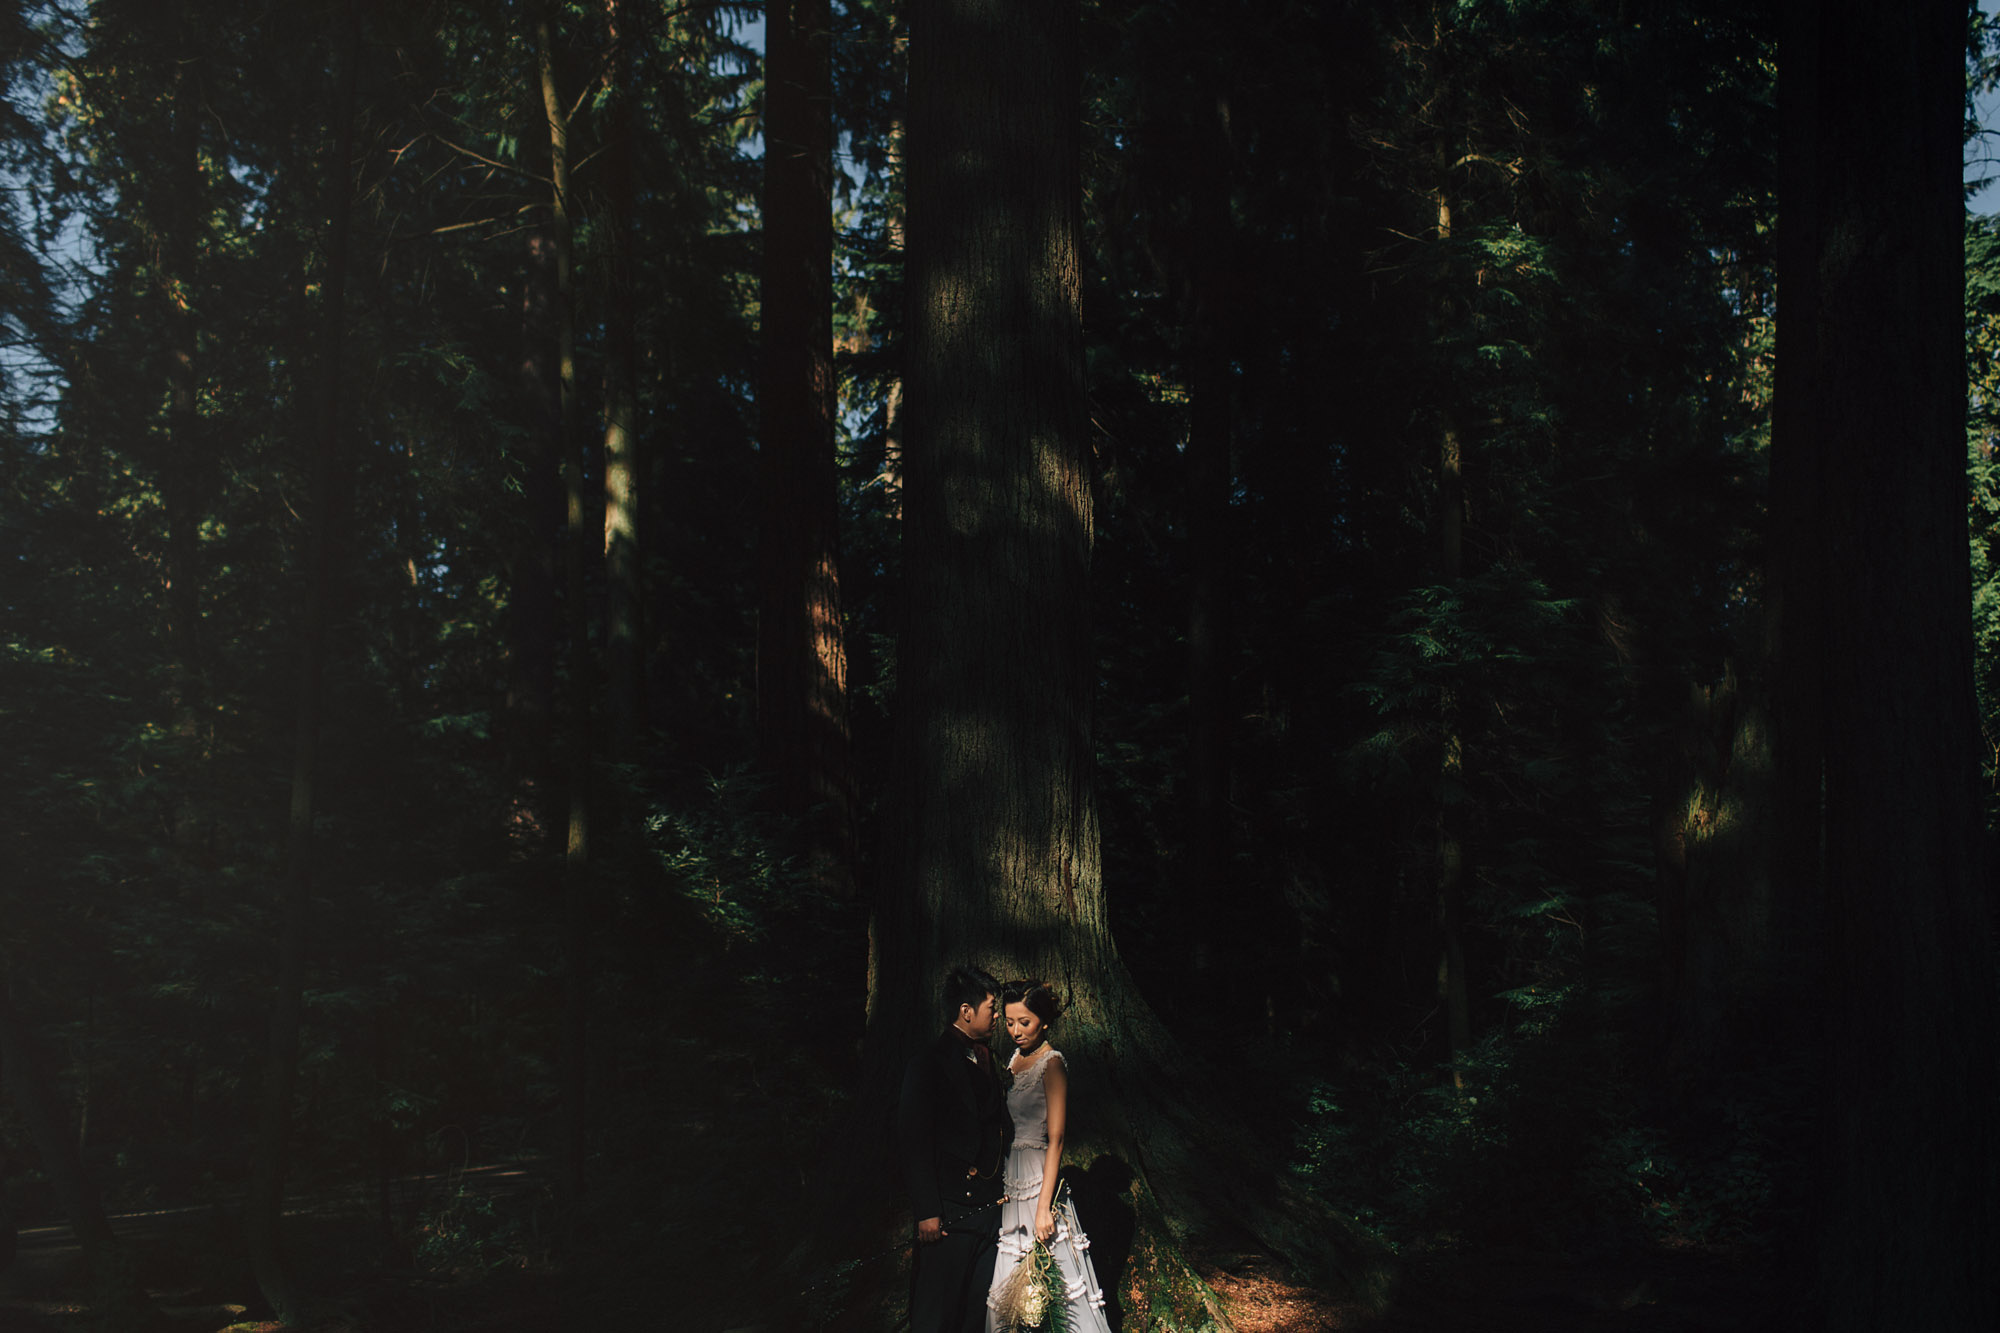 beaver lake stanley park vancouver wedding photographers noyo creative